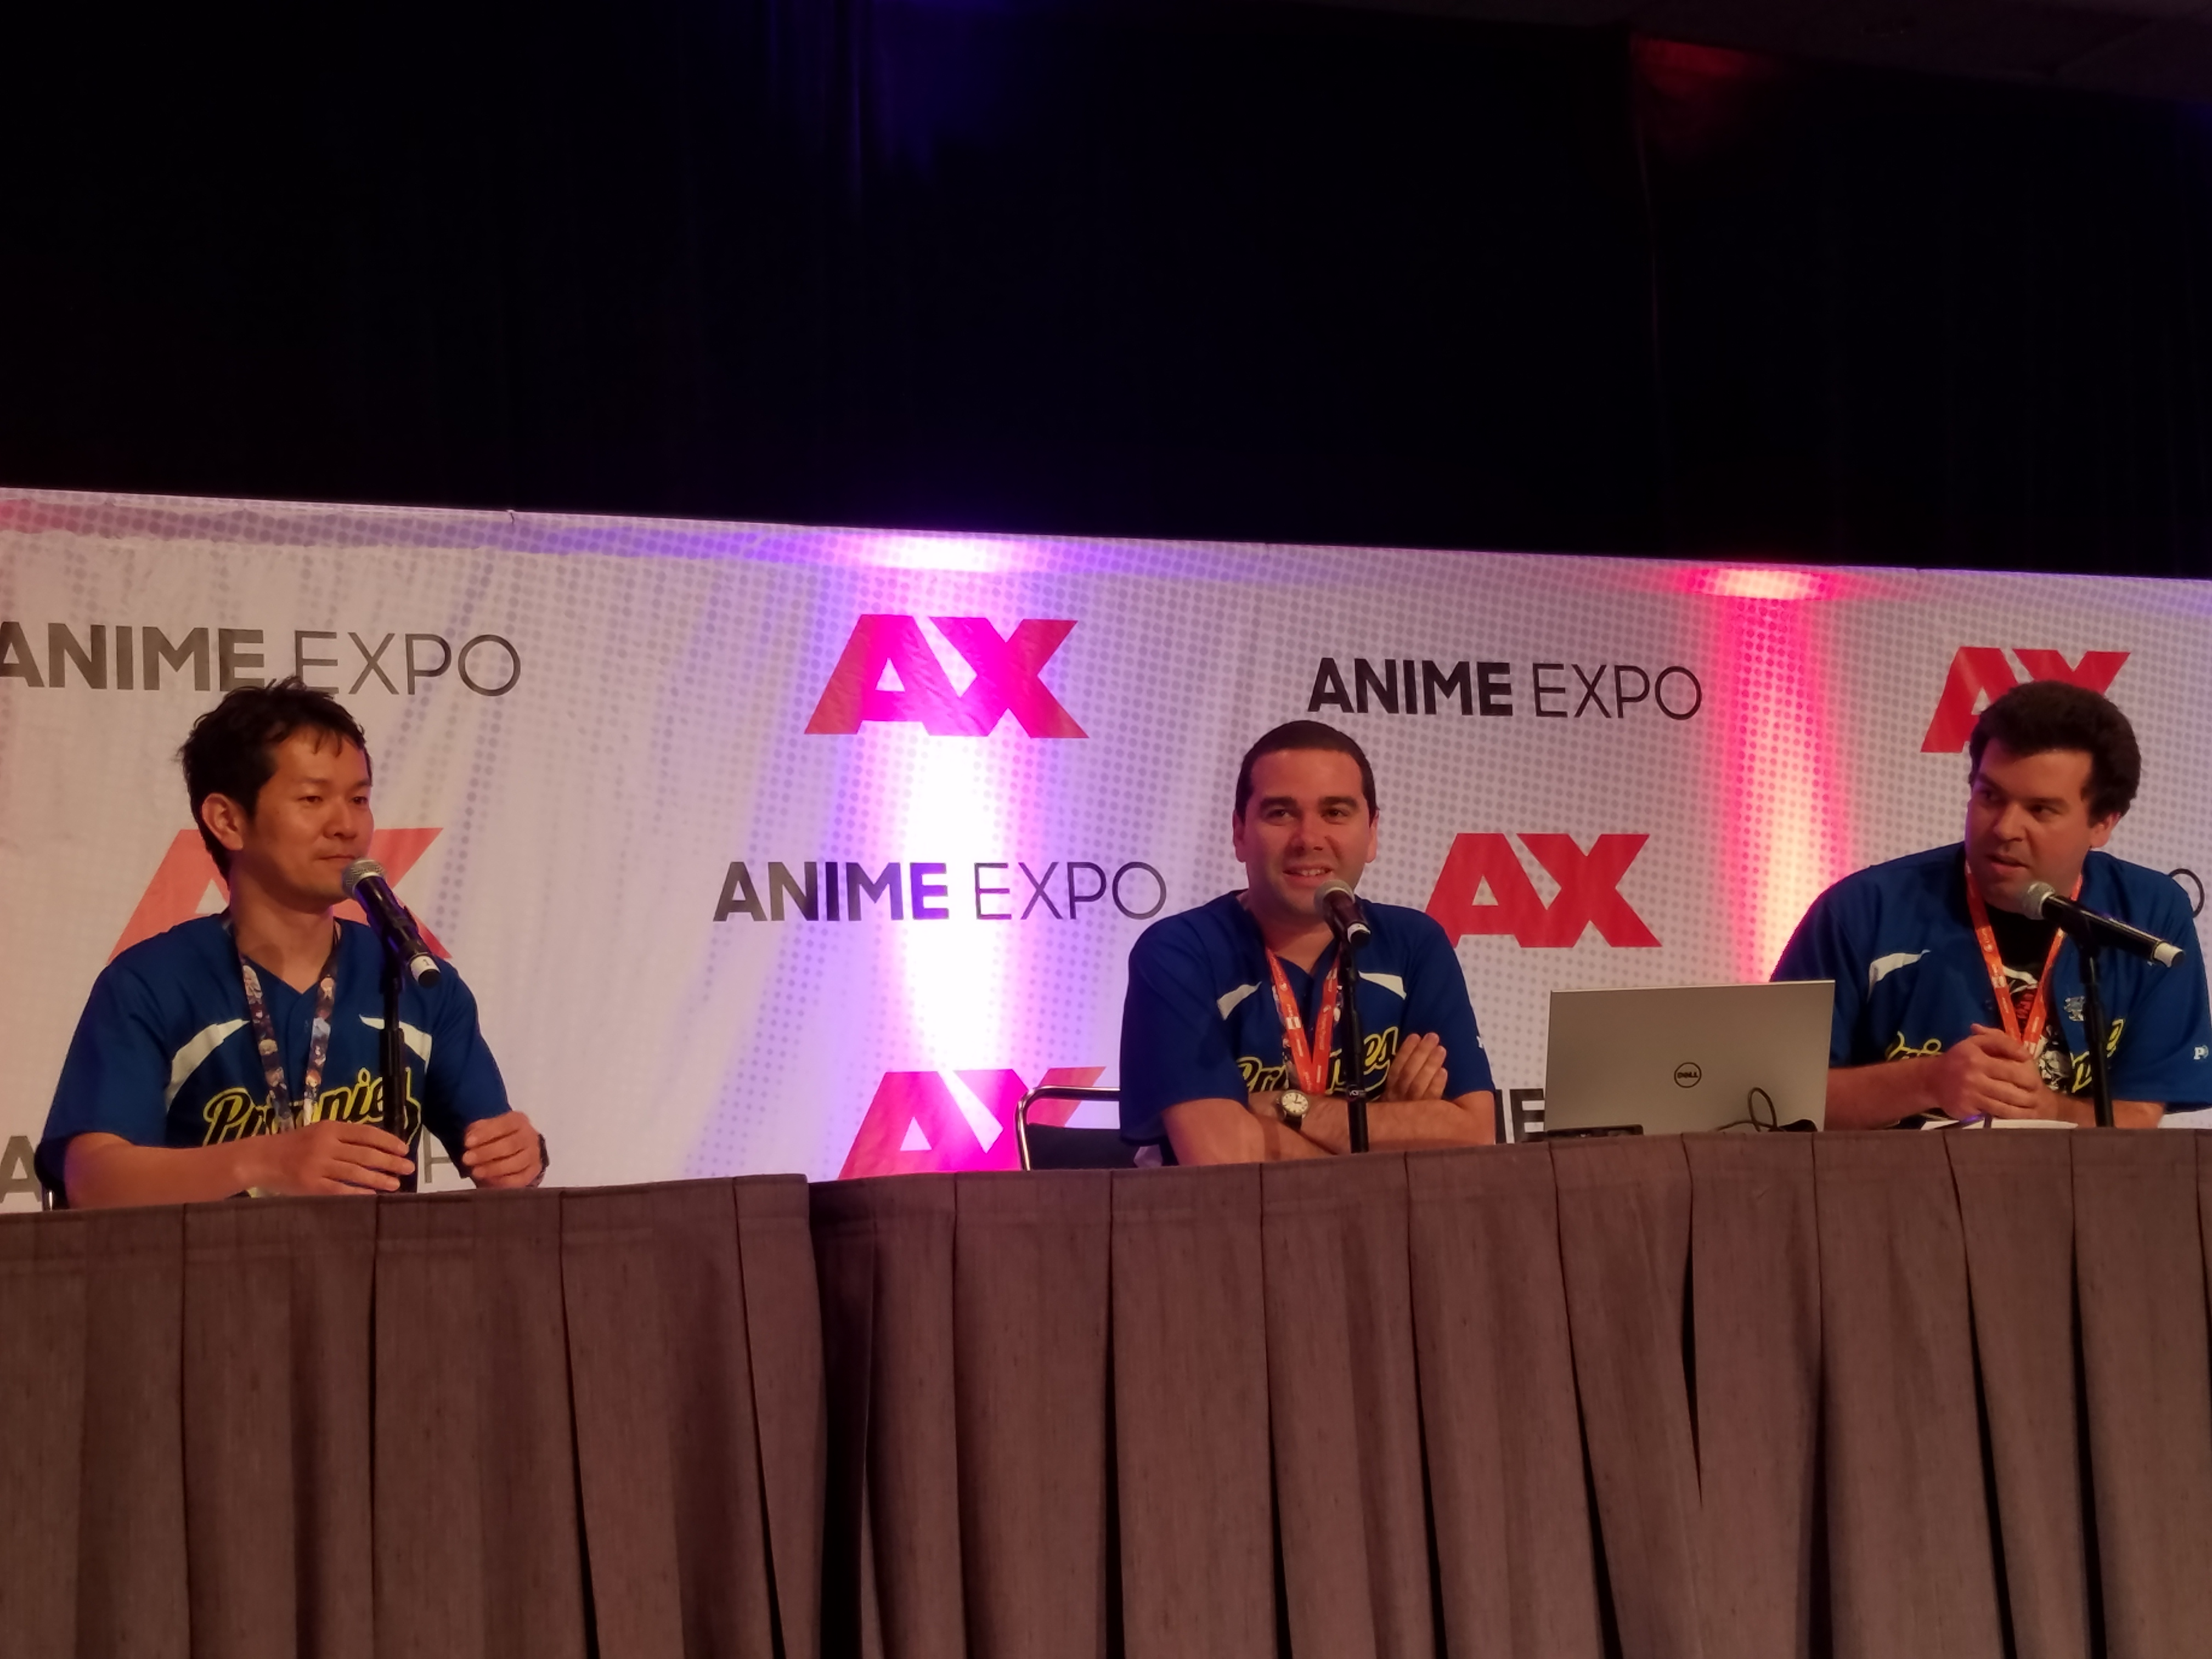 [AnimeExpo] NIS America Panel: Ys VIII – From Fan to President Report